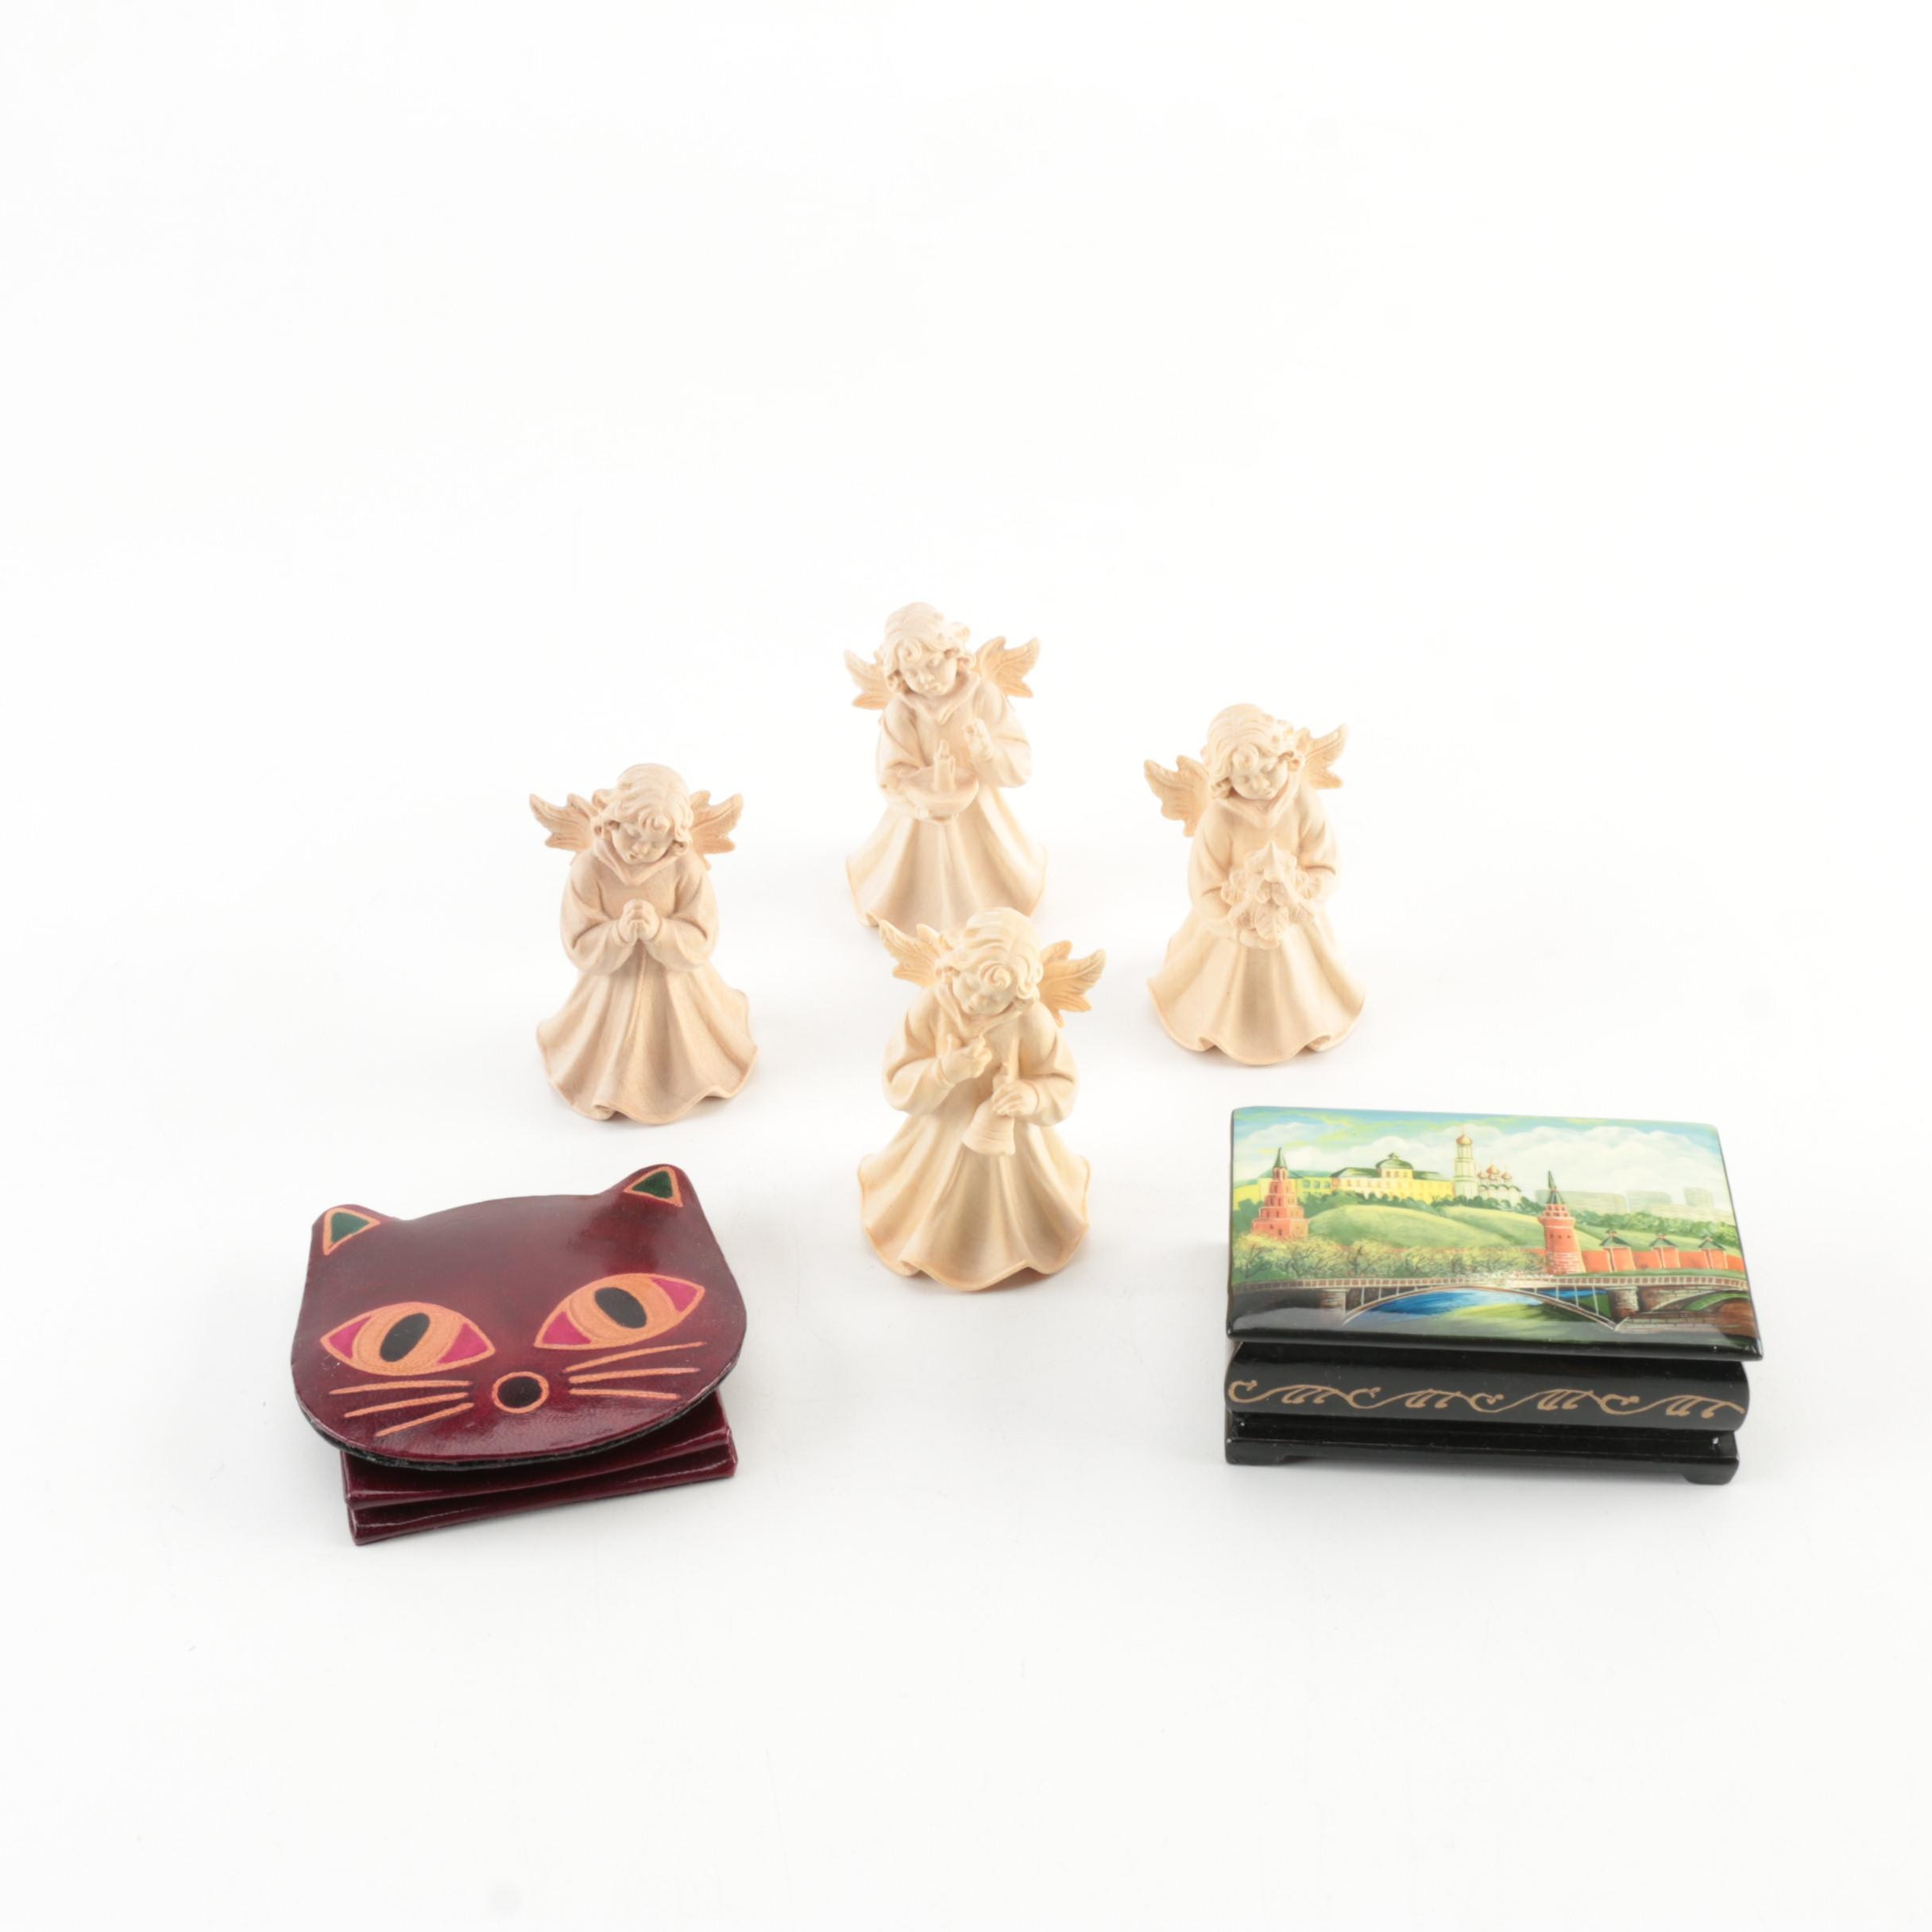 Selection of Decorative Pieces Featuring Holzschintzerei Carved Wooden Angels